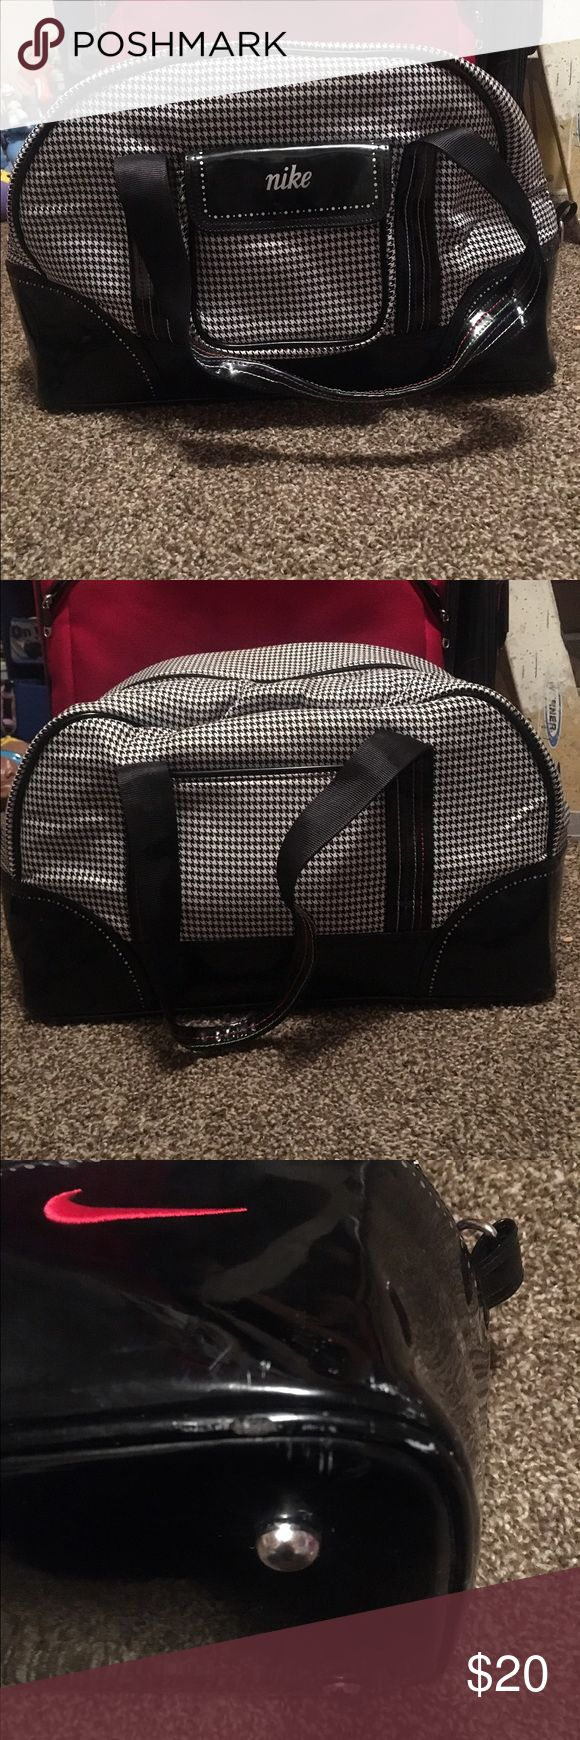 Nike shoulder bag Send a few times when traveling. Great size. Comes with a removable wristlet. No need for it anymore. Great condition. Can be used for anything. Nike Bags Shoulder Bags